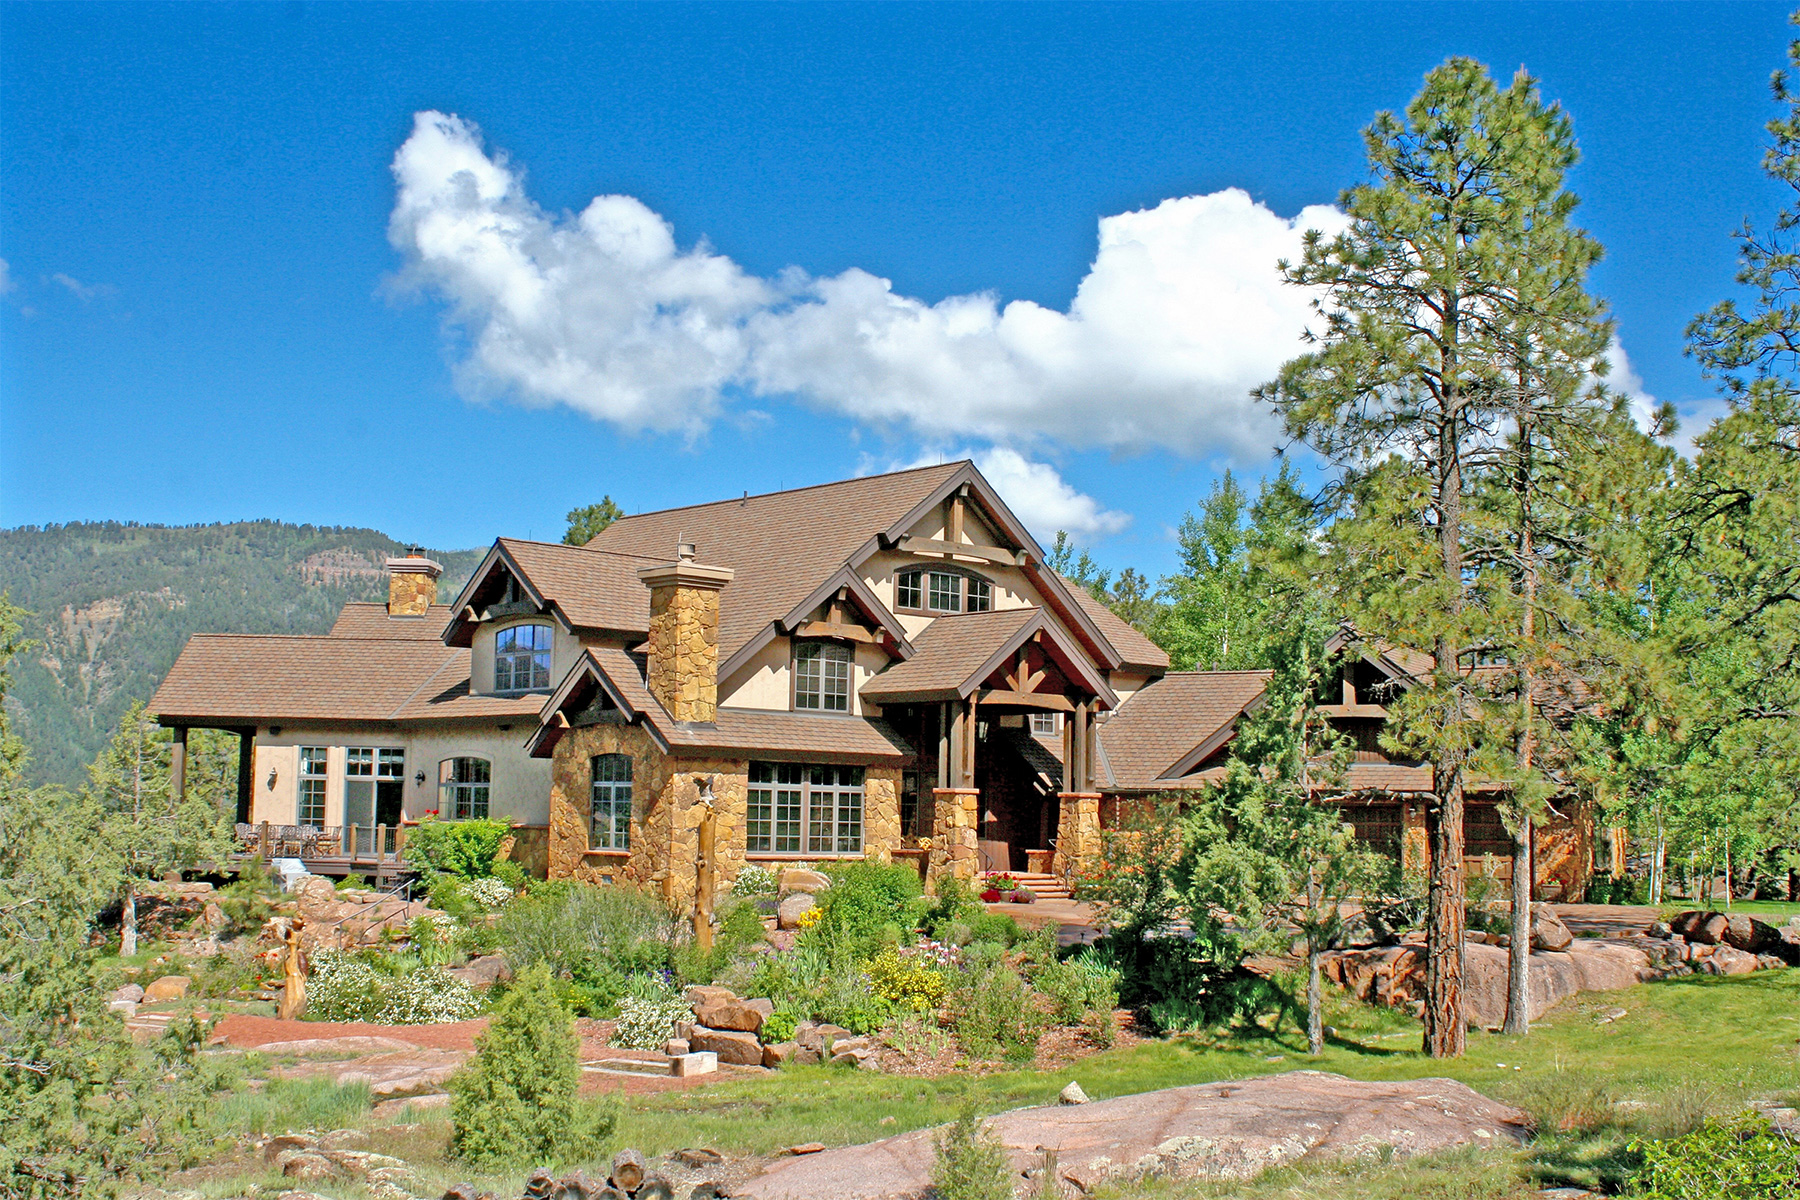 Casa Unifamiliar por un Venta en Granite Fall Lodge 1501 Celadon Drive East Durango, Colorado 81301 Estados Unidos